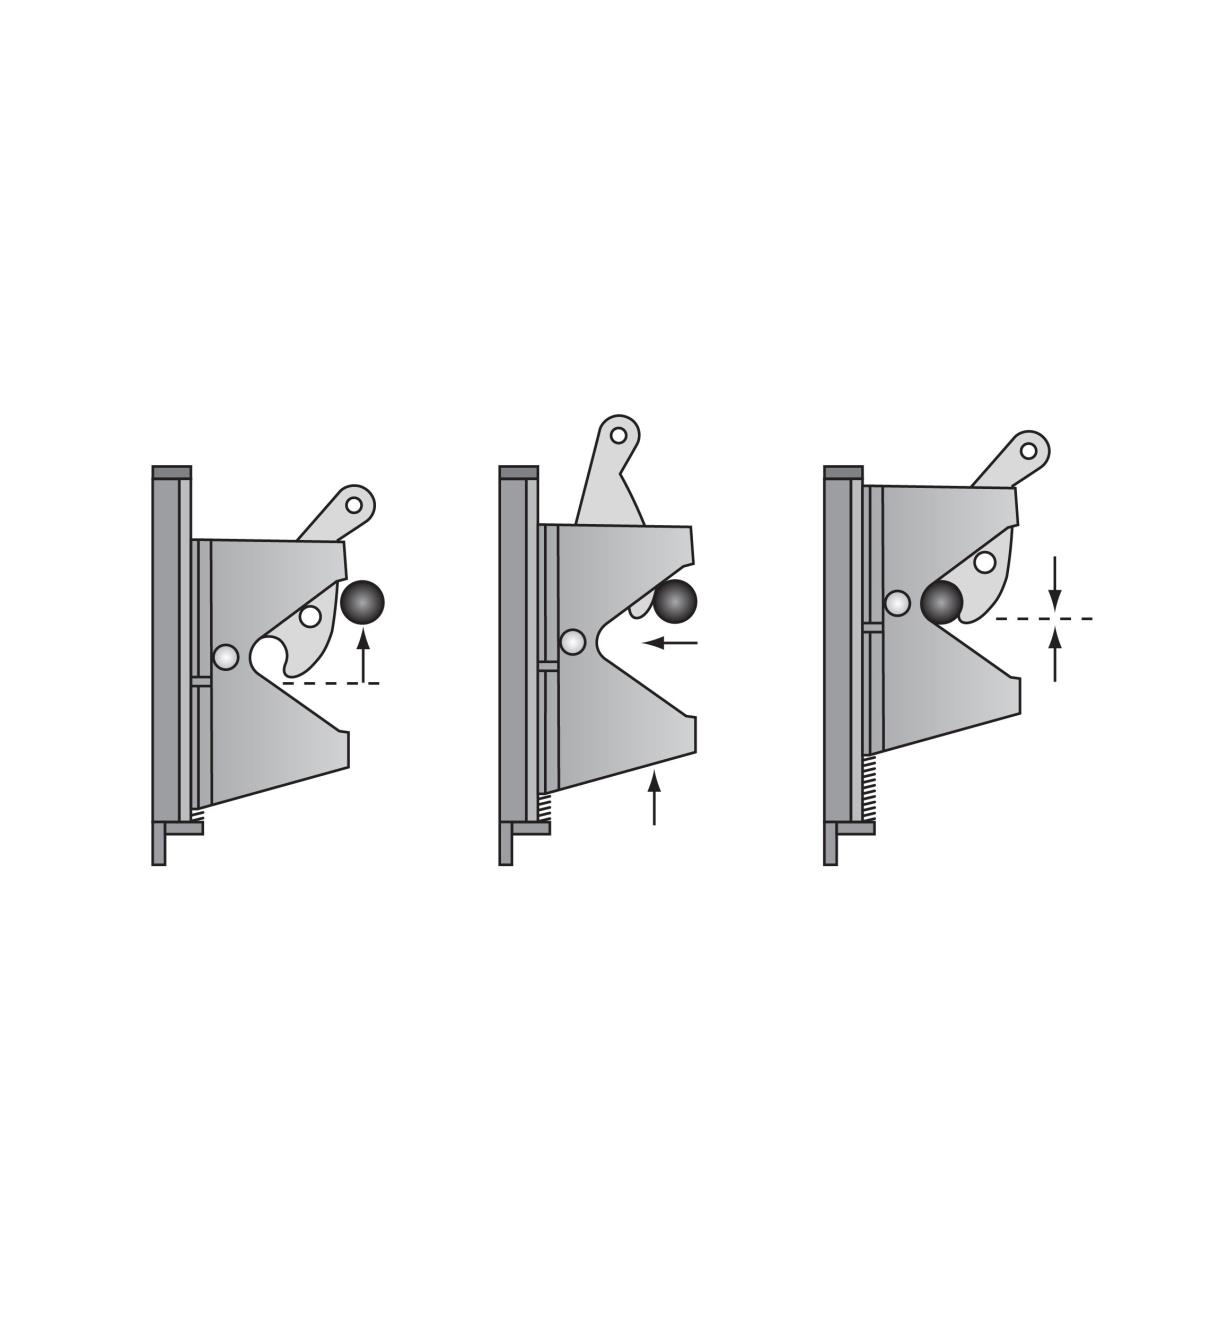 Series of three illustrations showing how the latch self-aligns